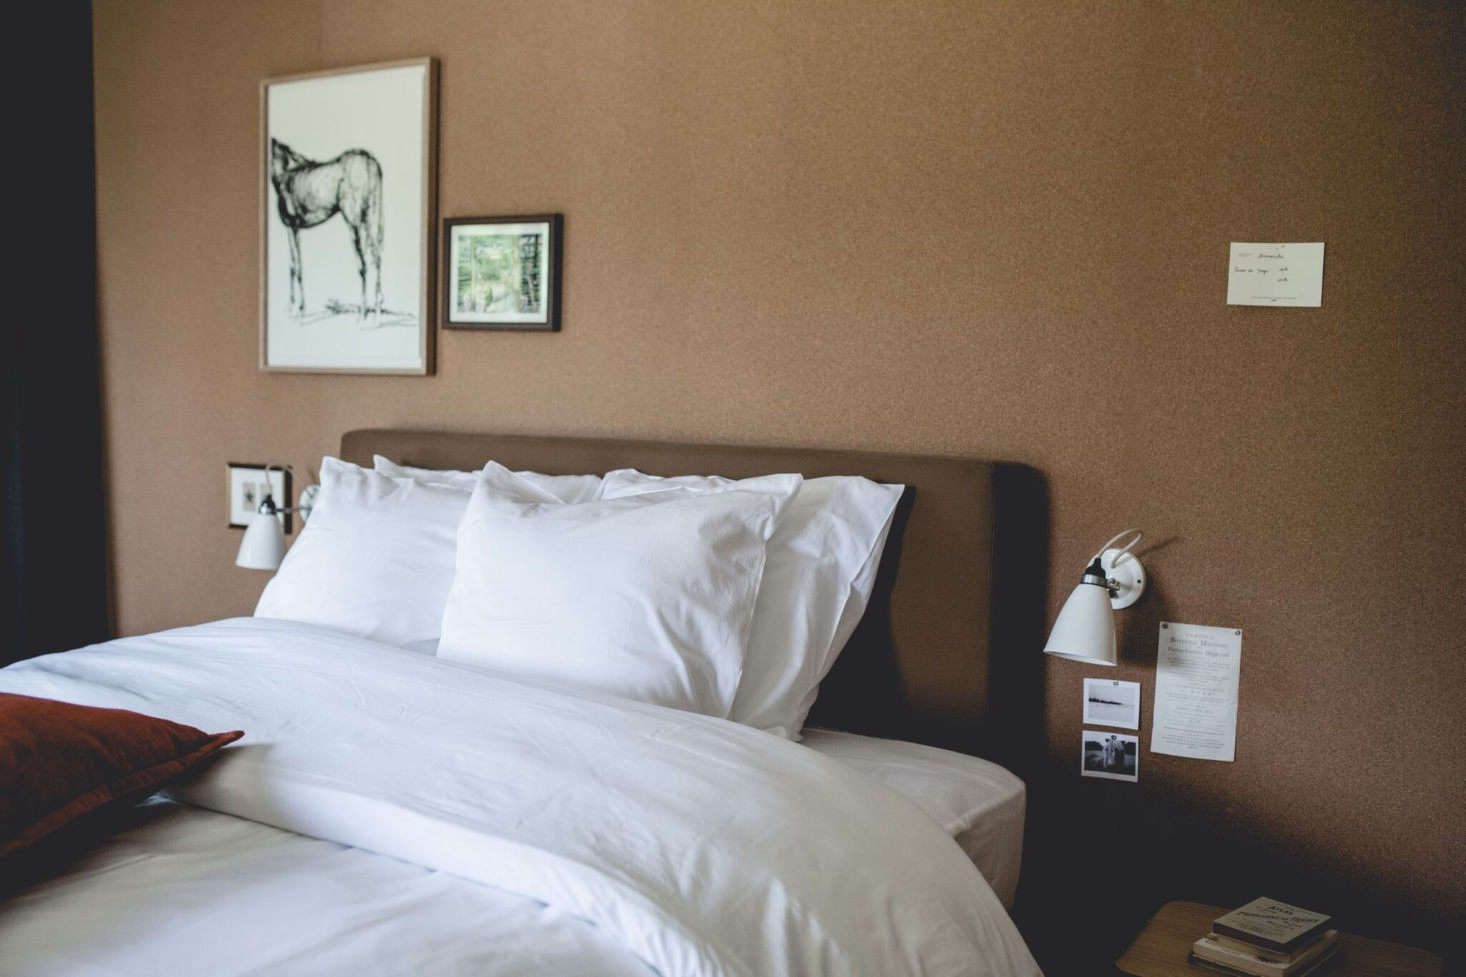 Beds are set against cork-lined walls ideal for displaying art.